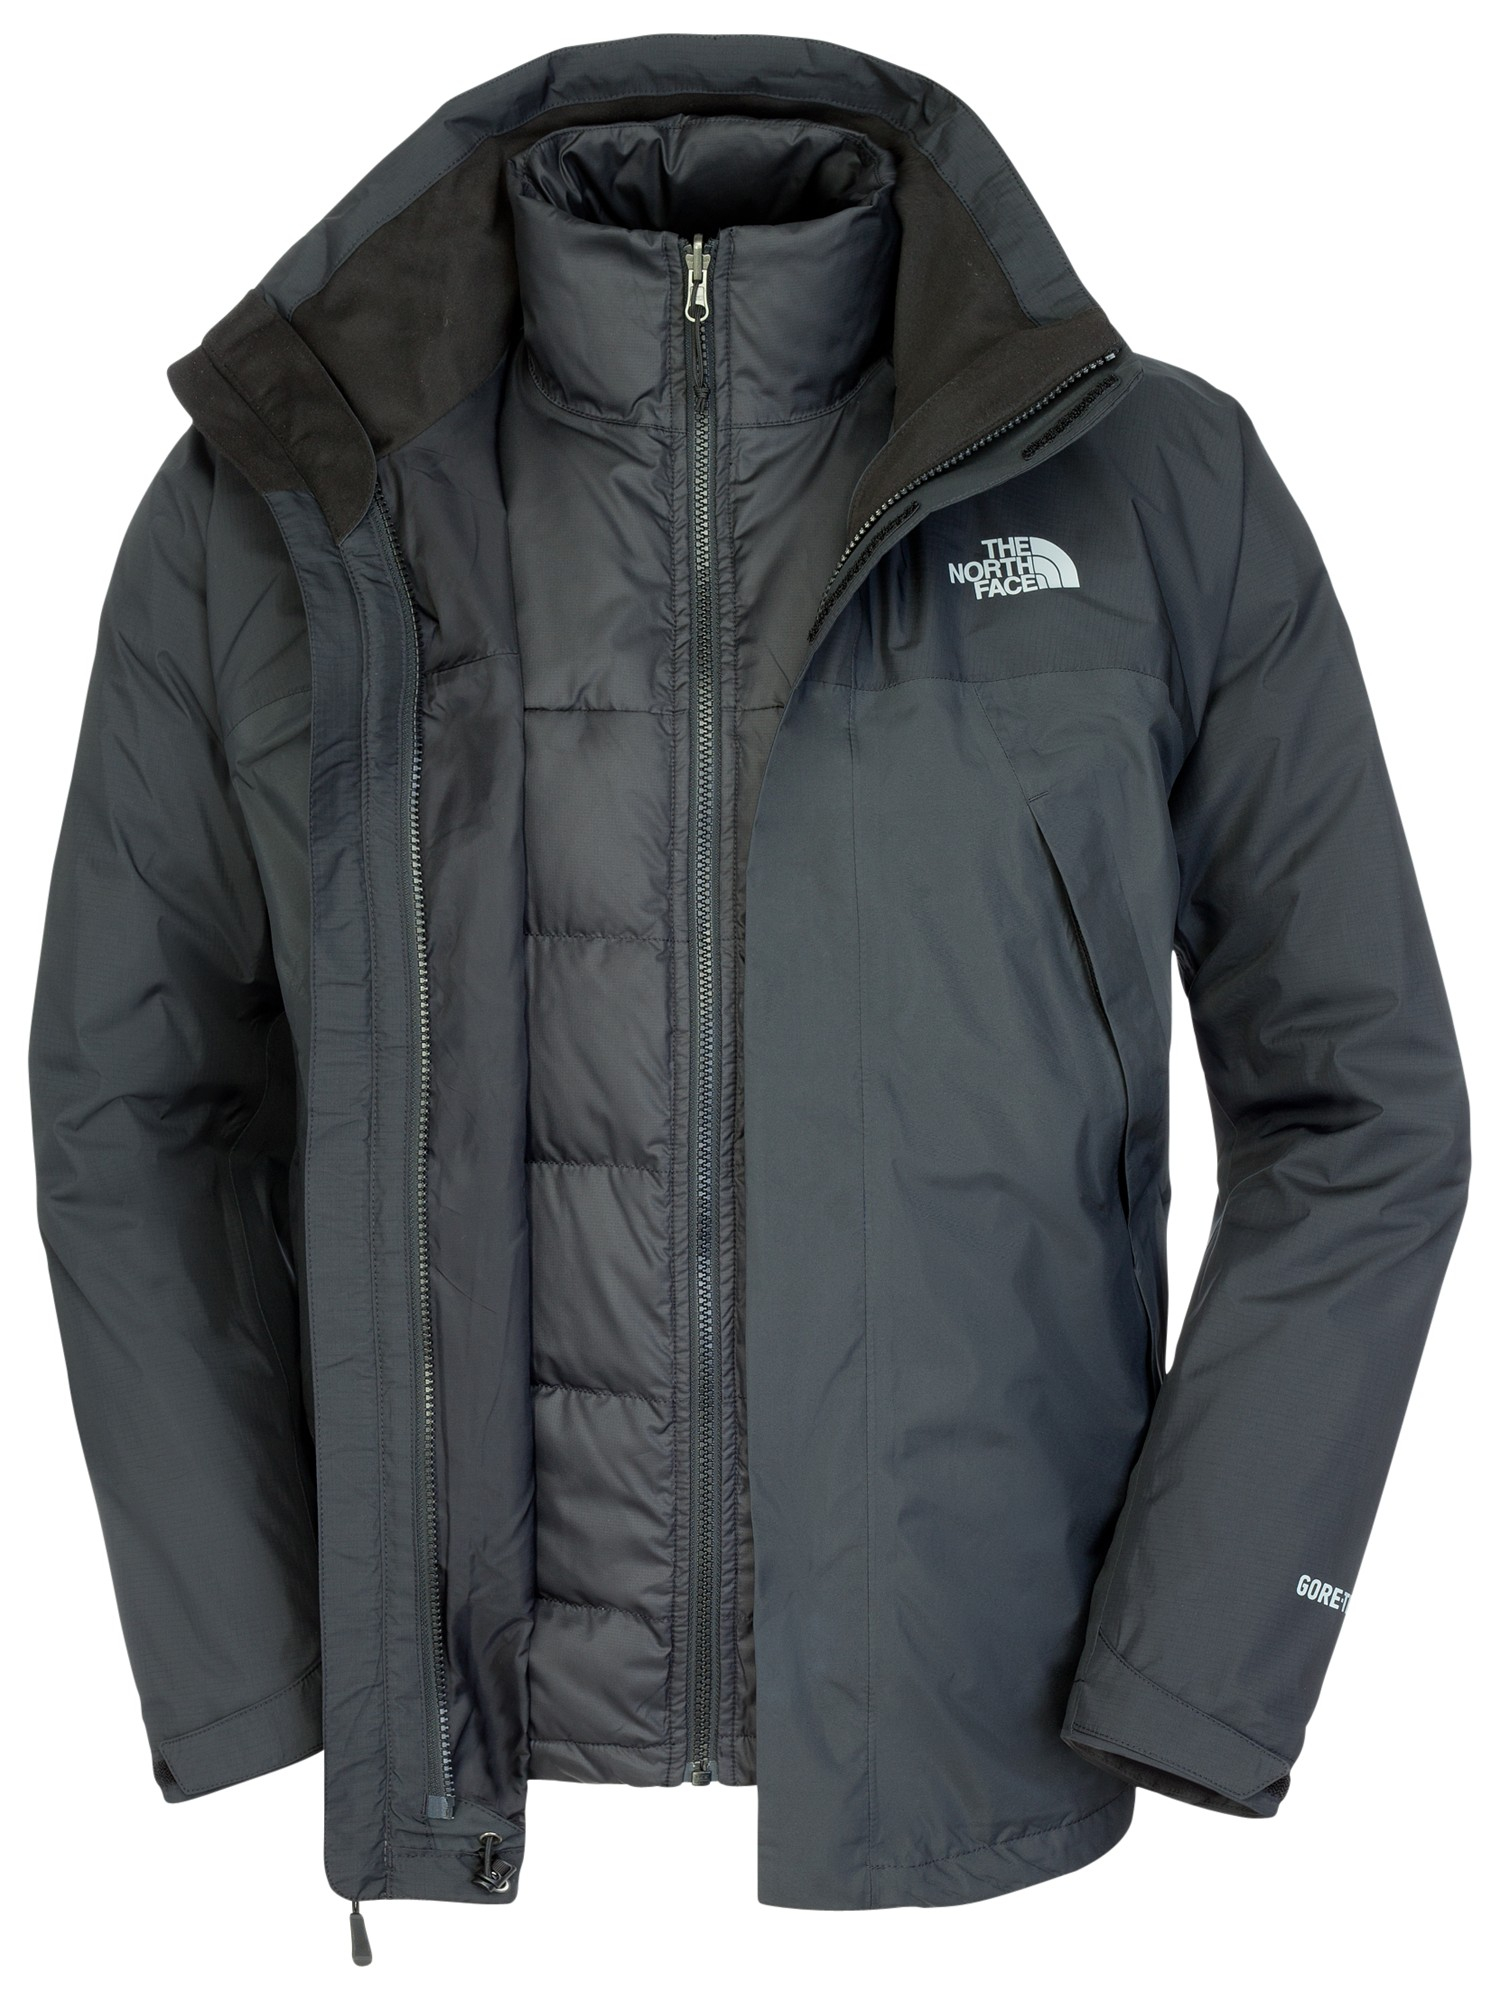 7fc00d06b45f The North Face Mountain Light Triclimate 3-In-1 Jacket in Black for ...